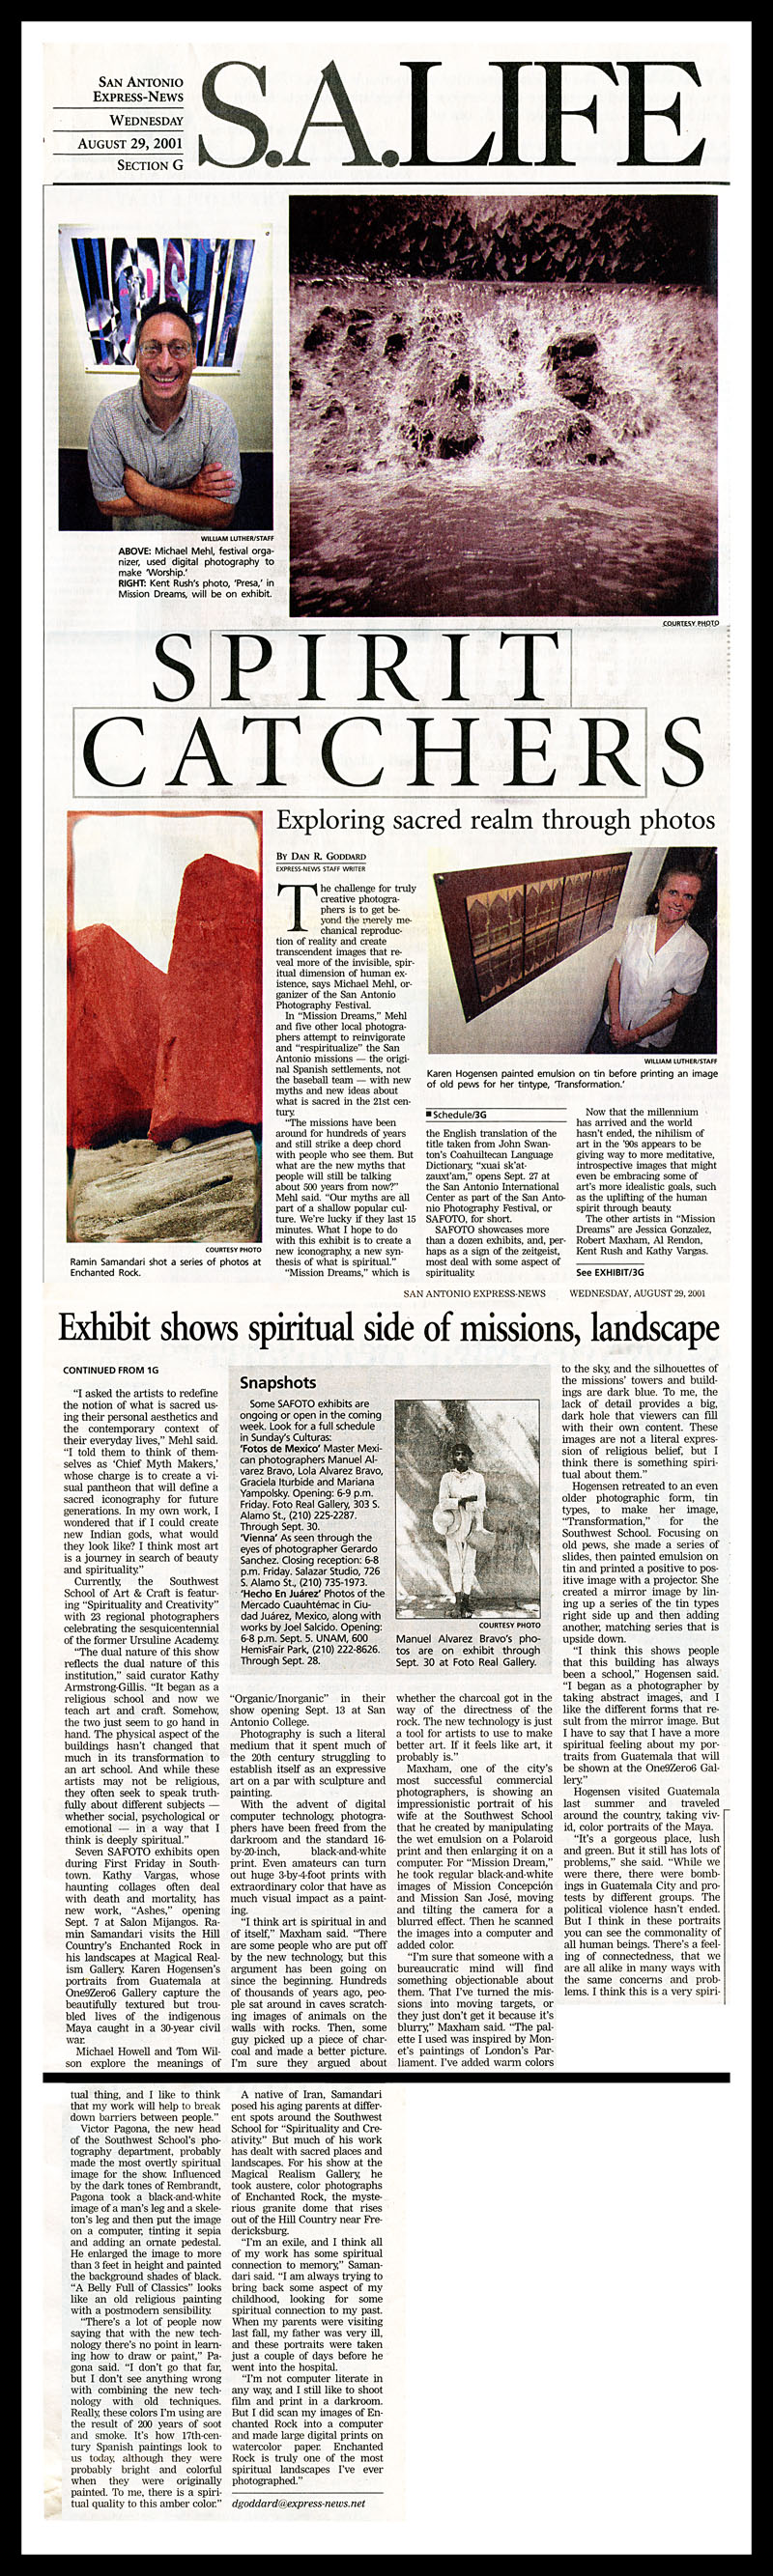 2001_Michael-Mehl_Spirit-Catchers_SAFOTO_San-Antonio-Express-News